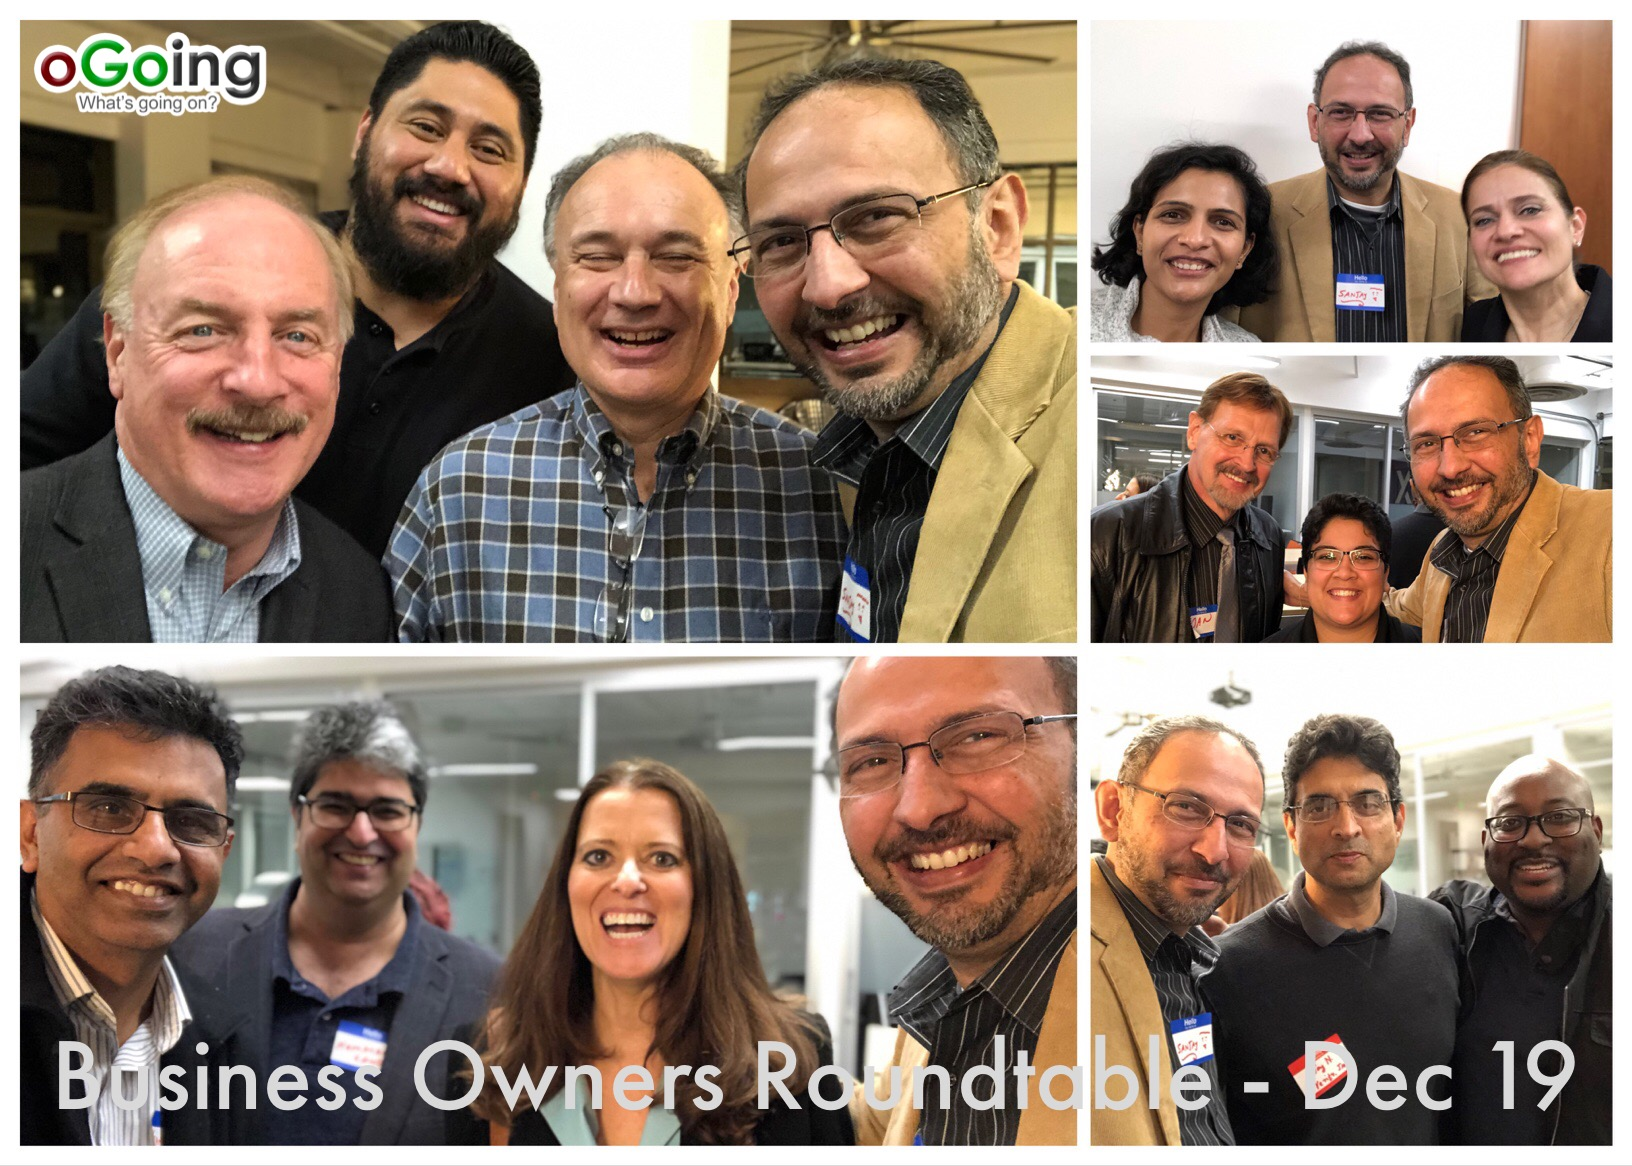 Fun Times at Business Owners Roundtable by oGoing